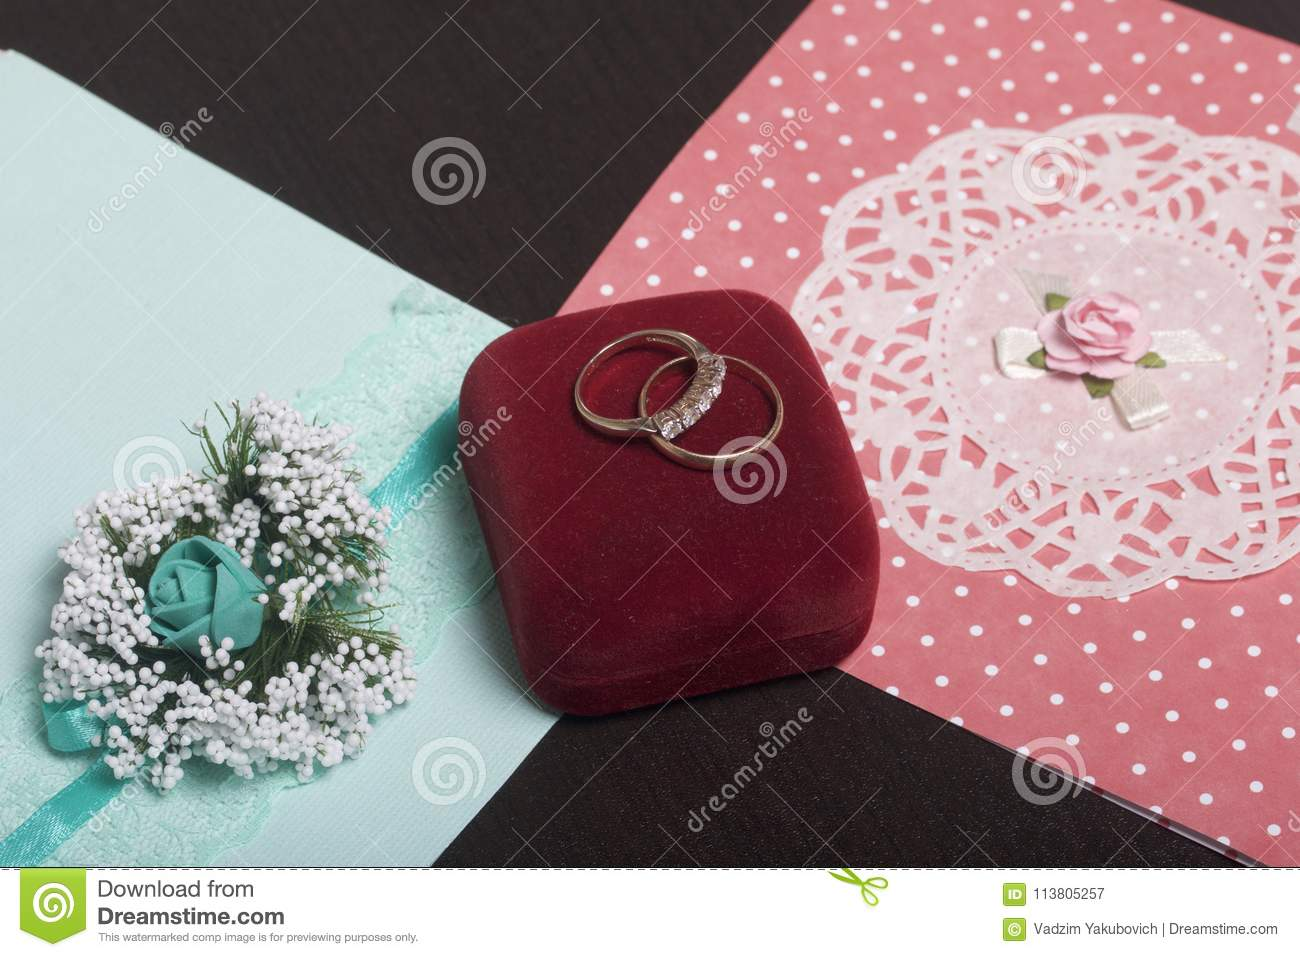 Wedding Decor. Invitation Cards And Wedding Rings In A Box, Lie On A ...